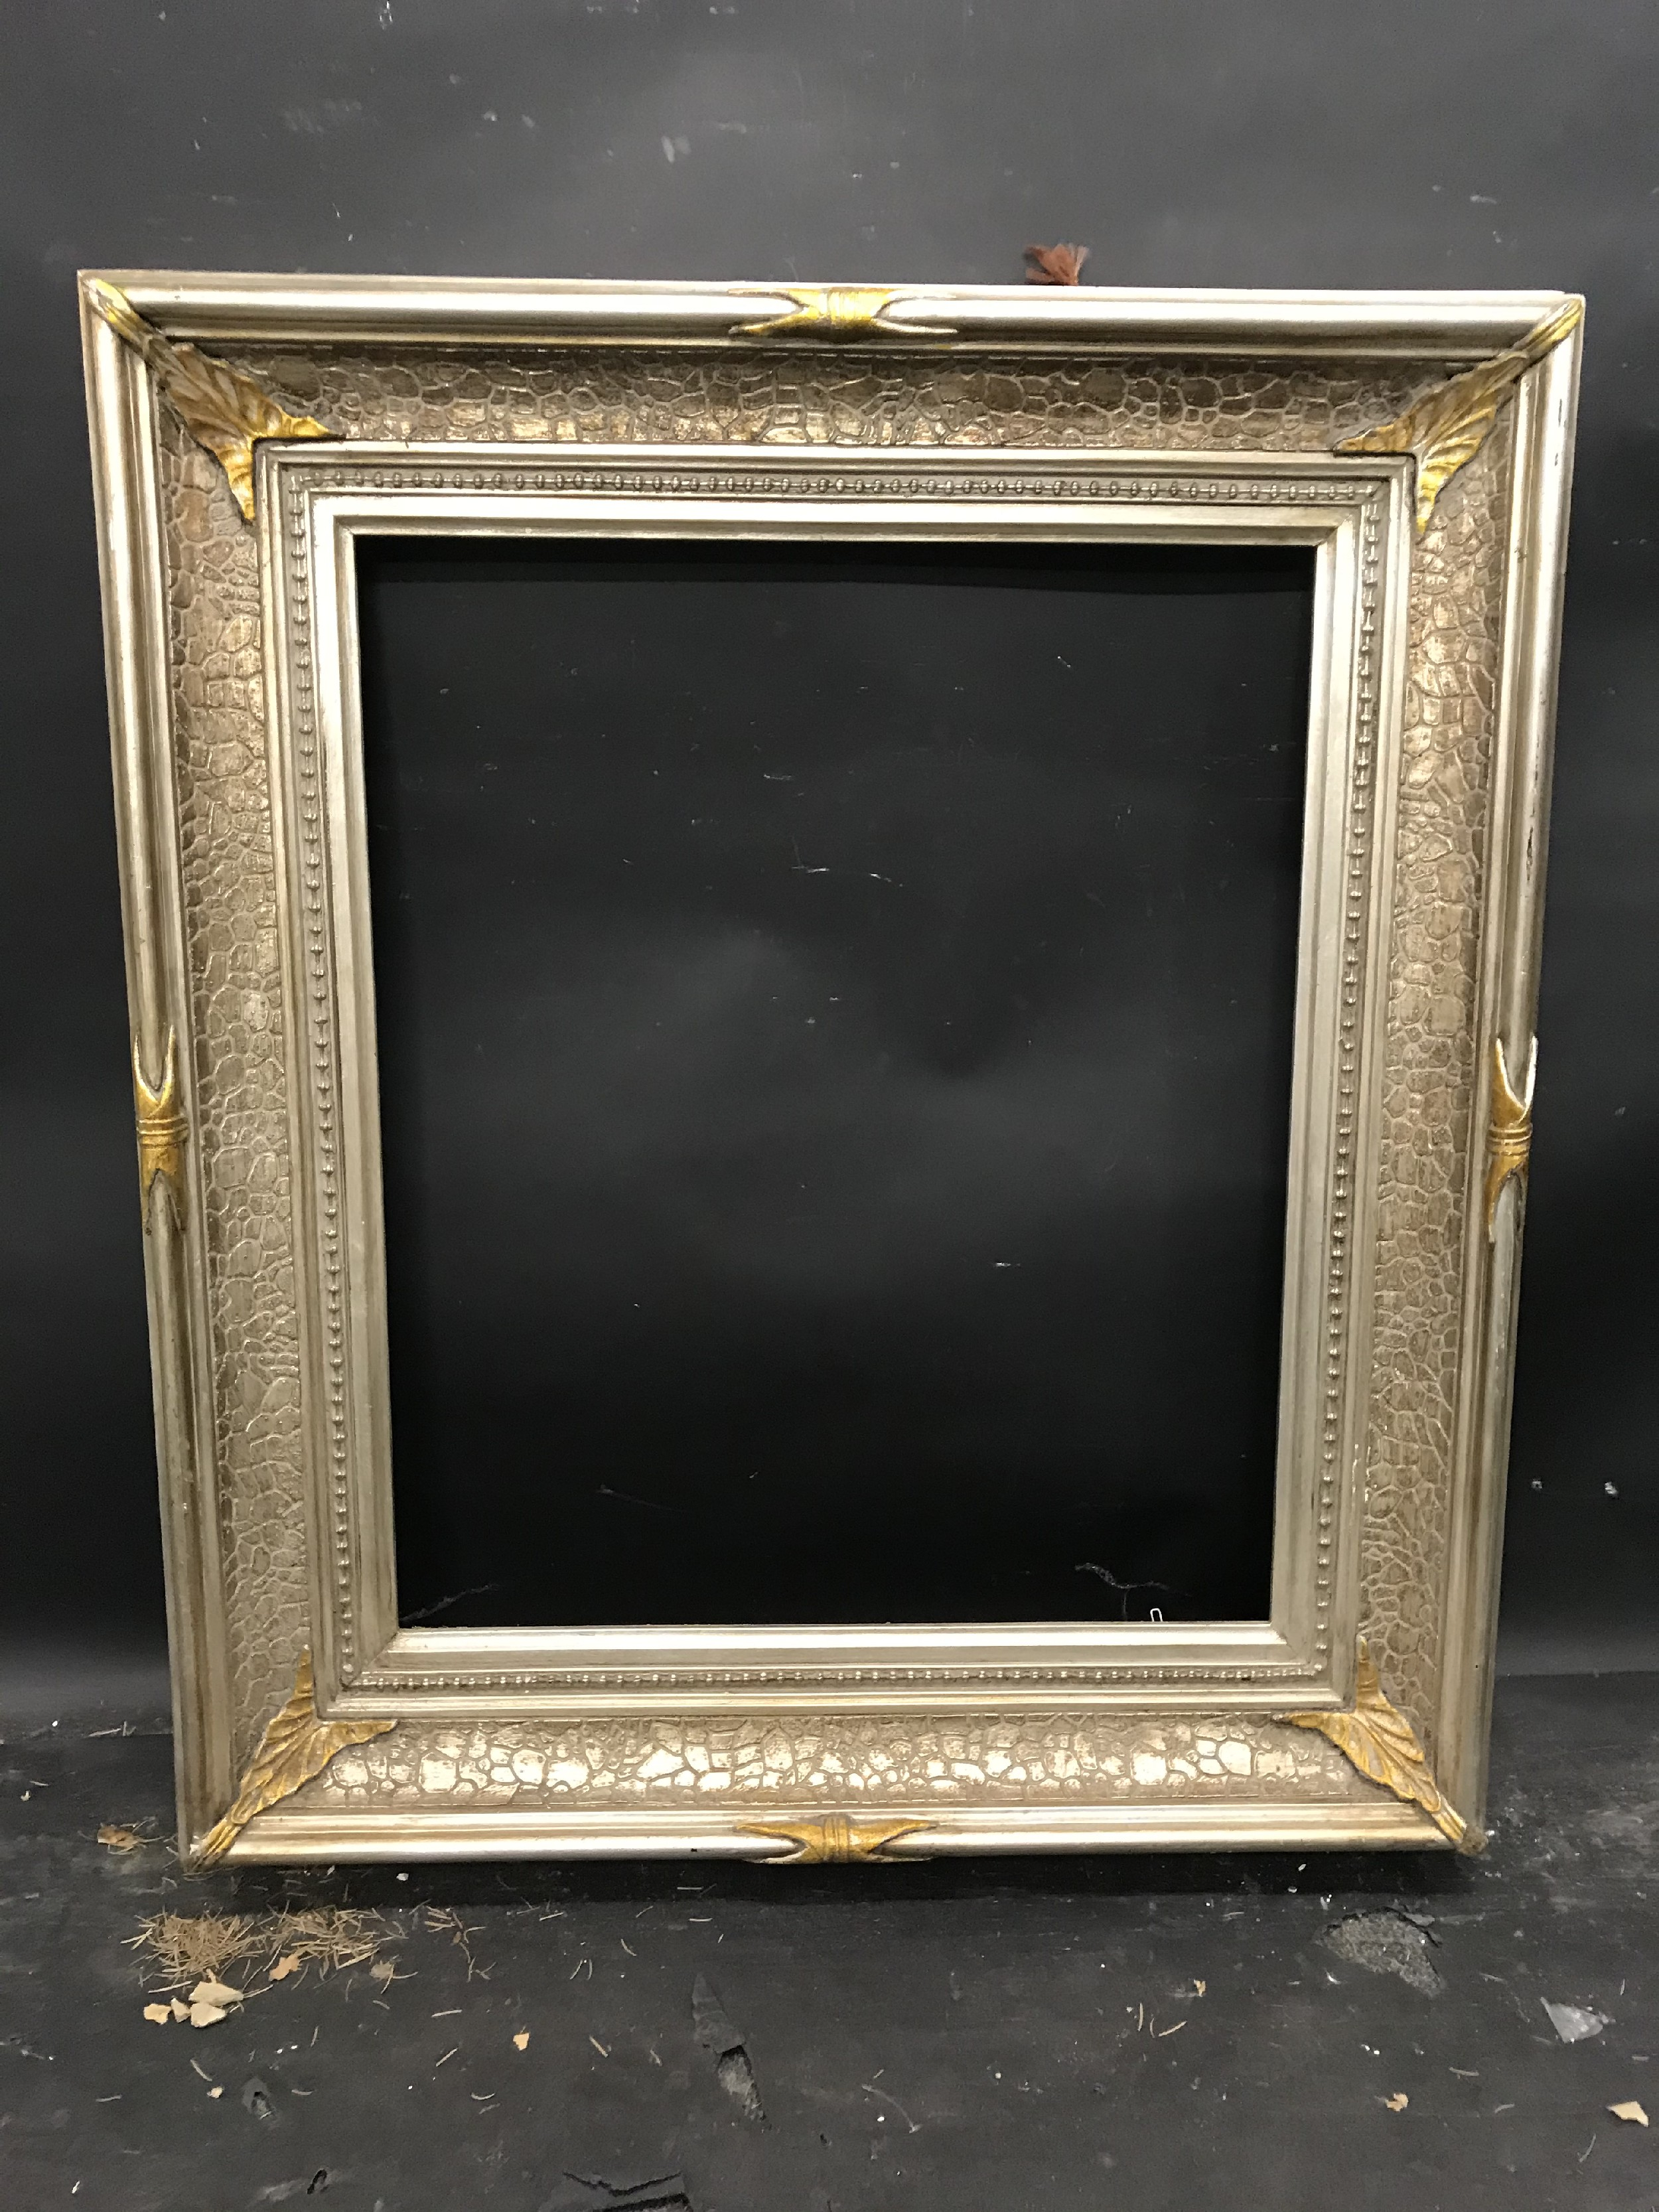 "Lot 52 - 20th Century American School. A Silver and Gilt Composition Frame, 24"" x 20"" (rebate)."